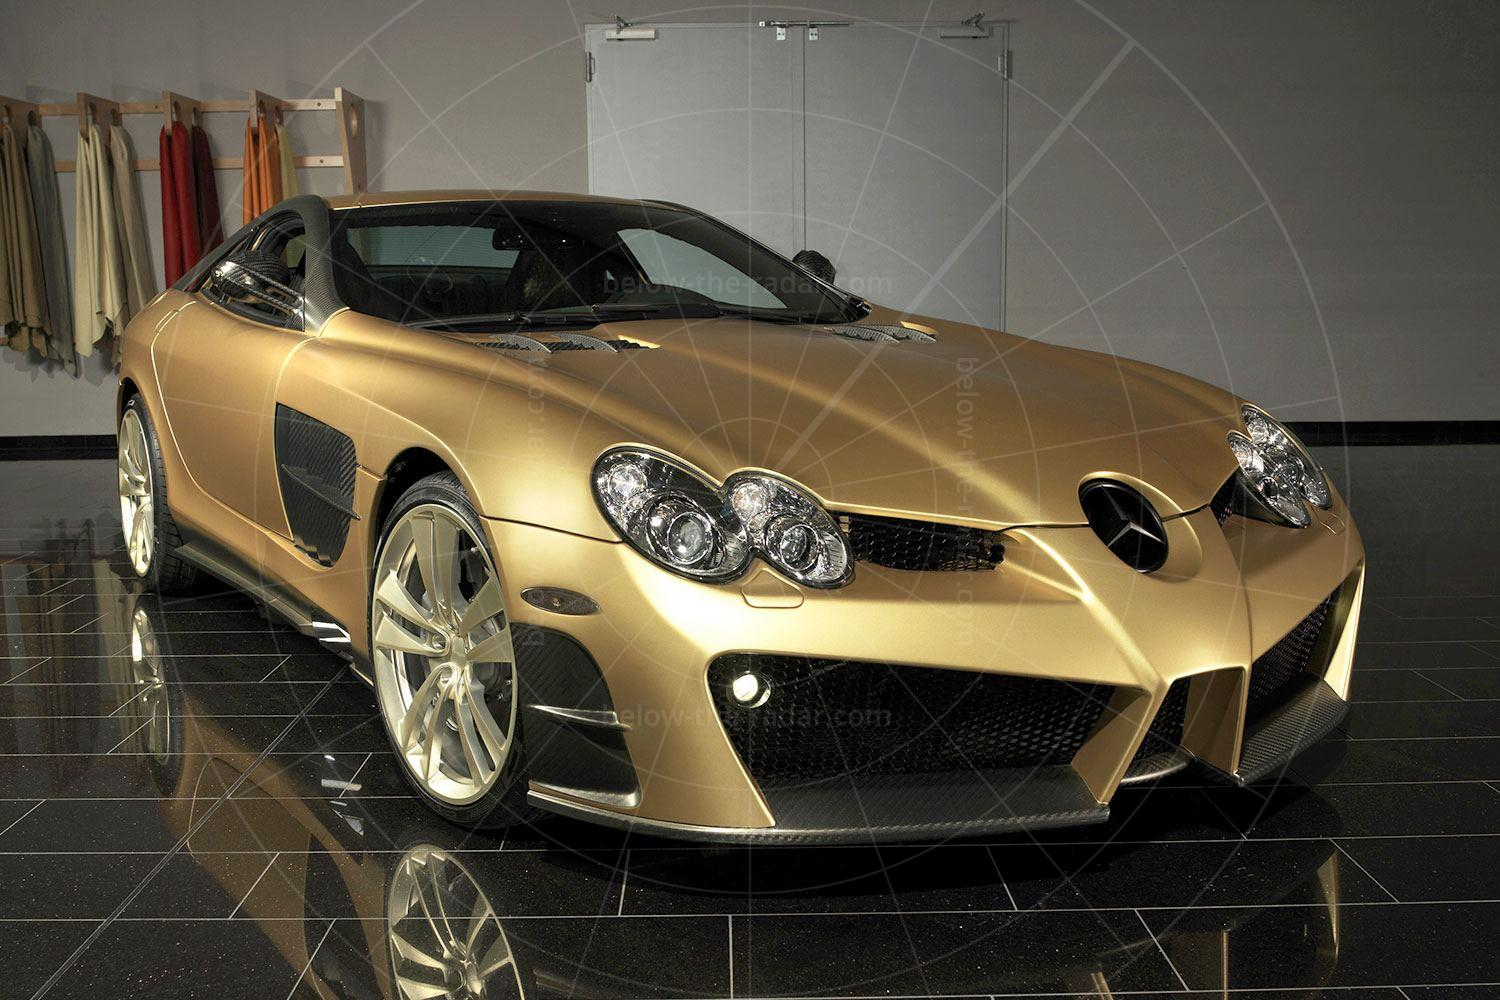 Mercedes SLR Mansory Renovatio